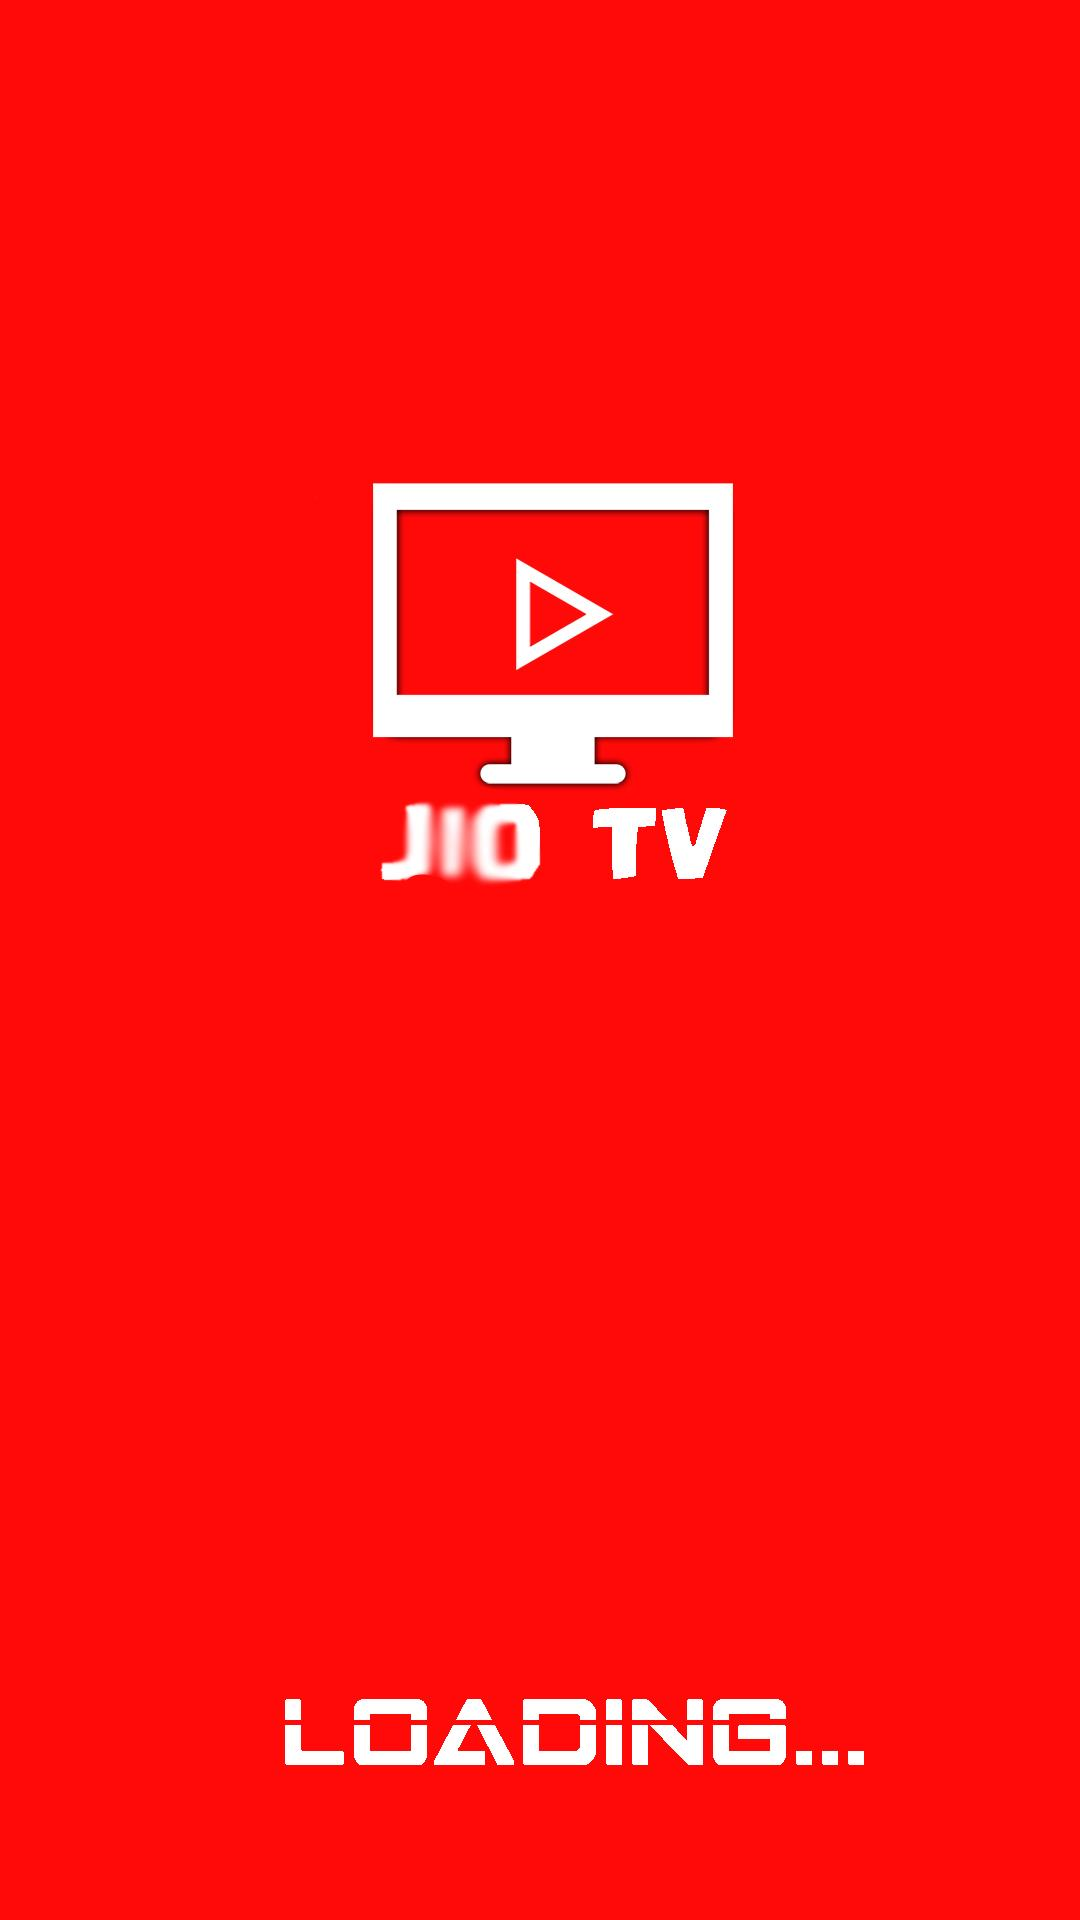 Free Jio TV - Sports JioTV Advice and Tips for Android - APK